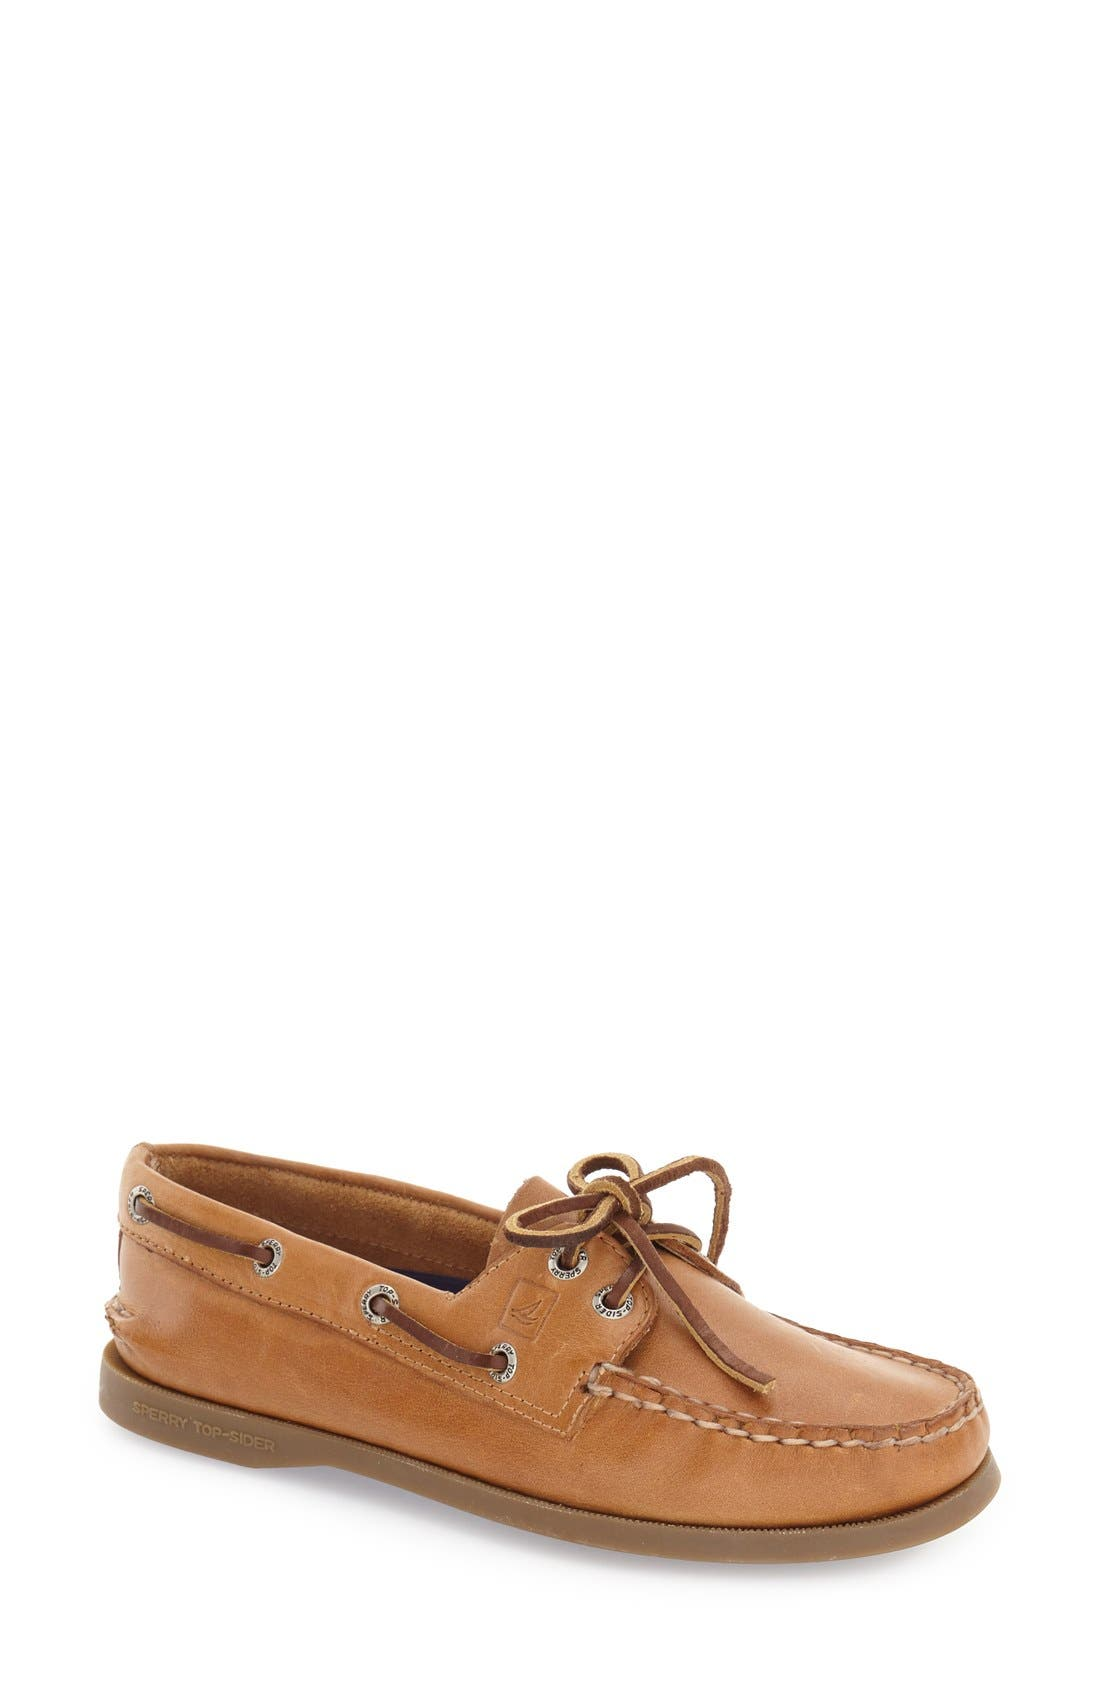 Sperry Authentic Original Boat Shoe (Women) (Regular Retail Price: $94.95)